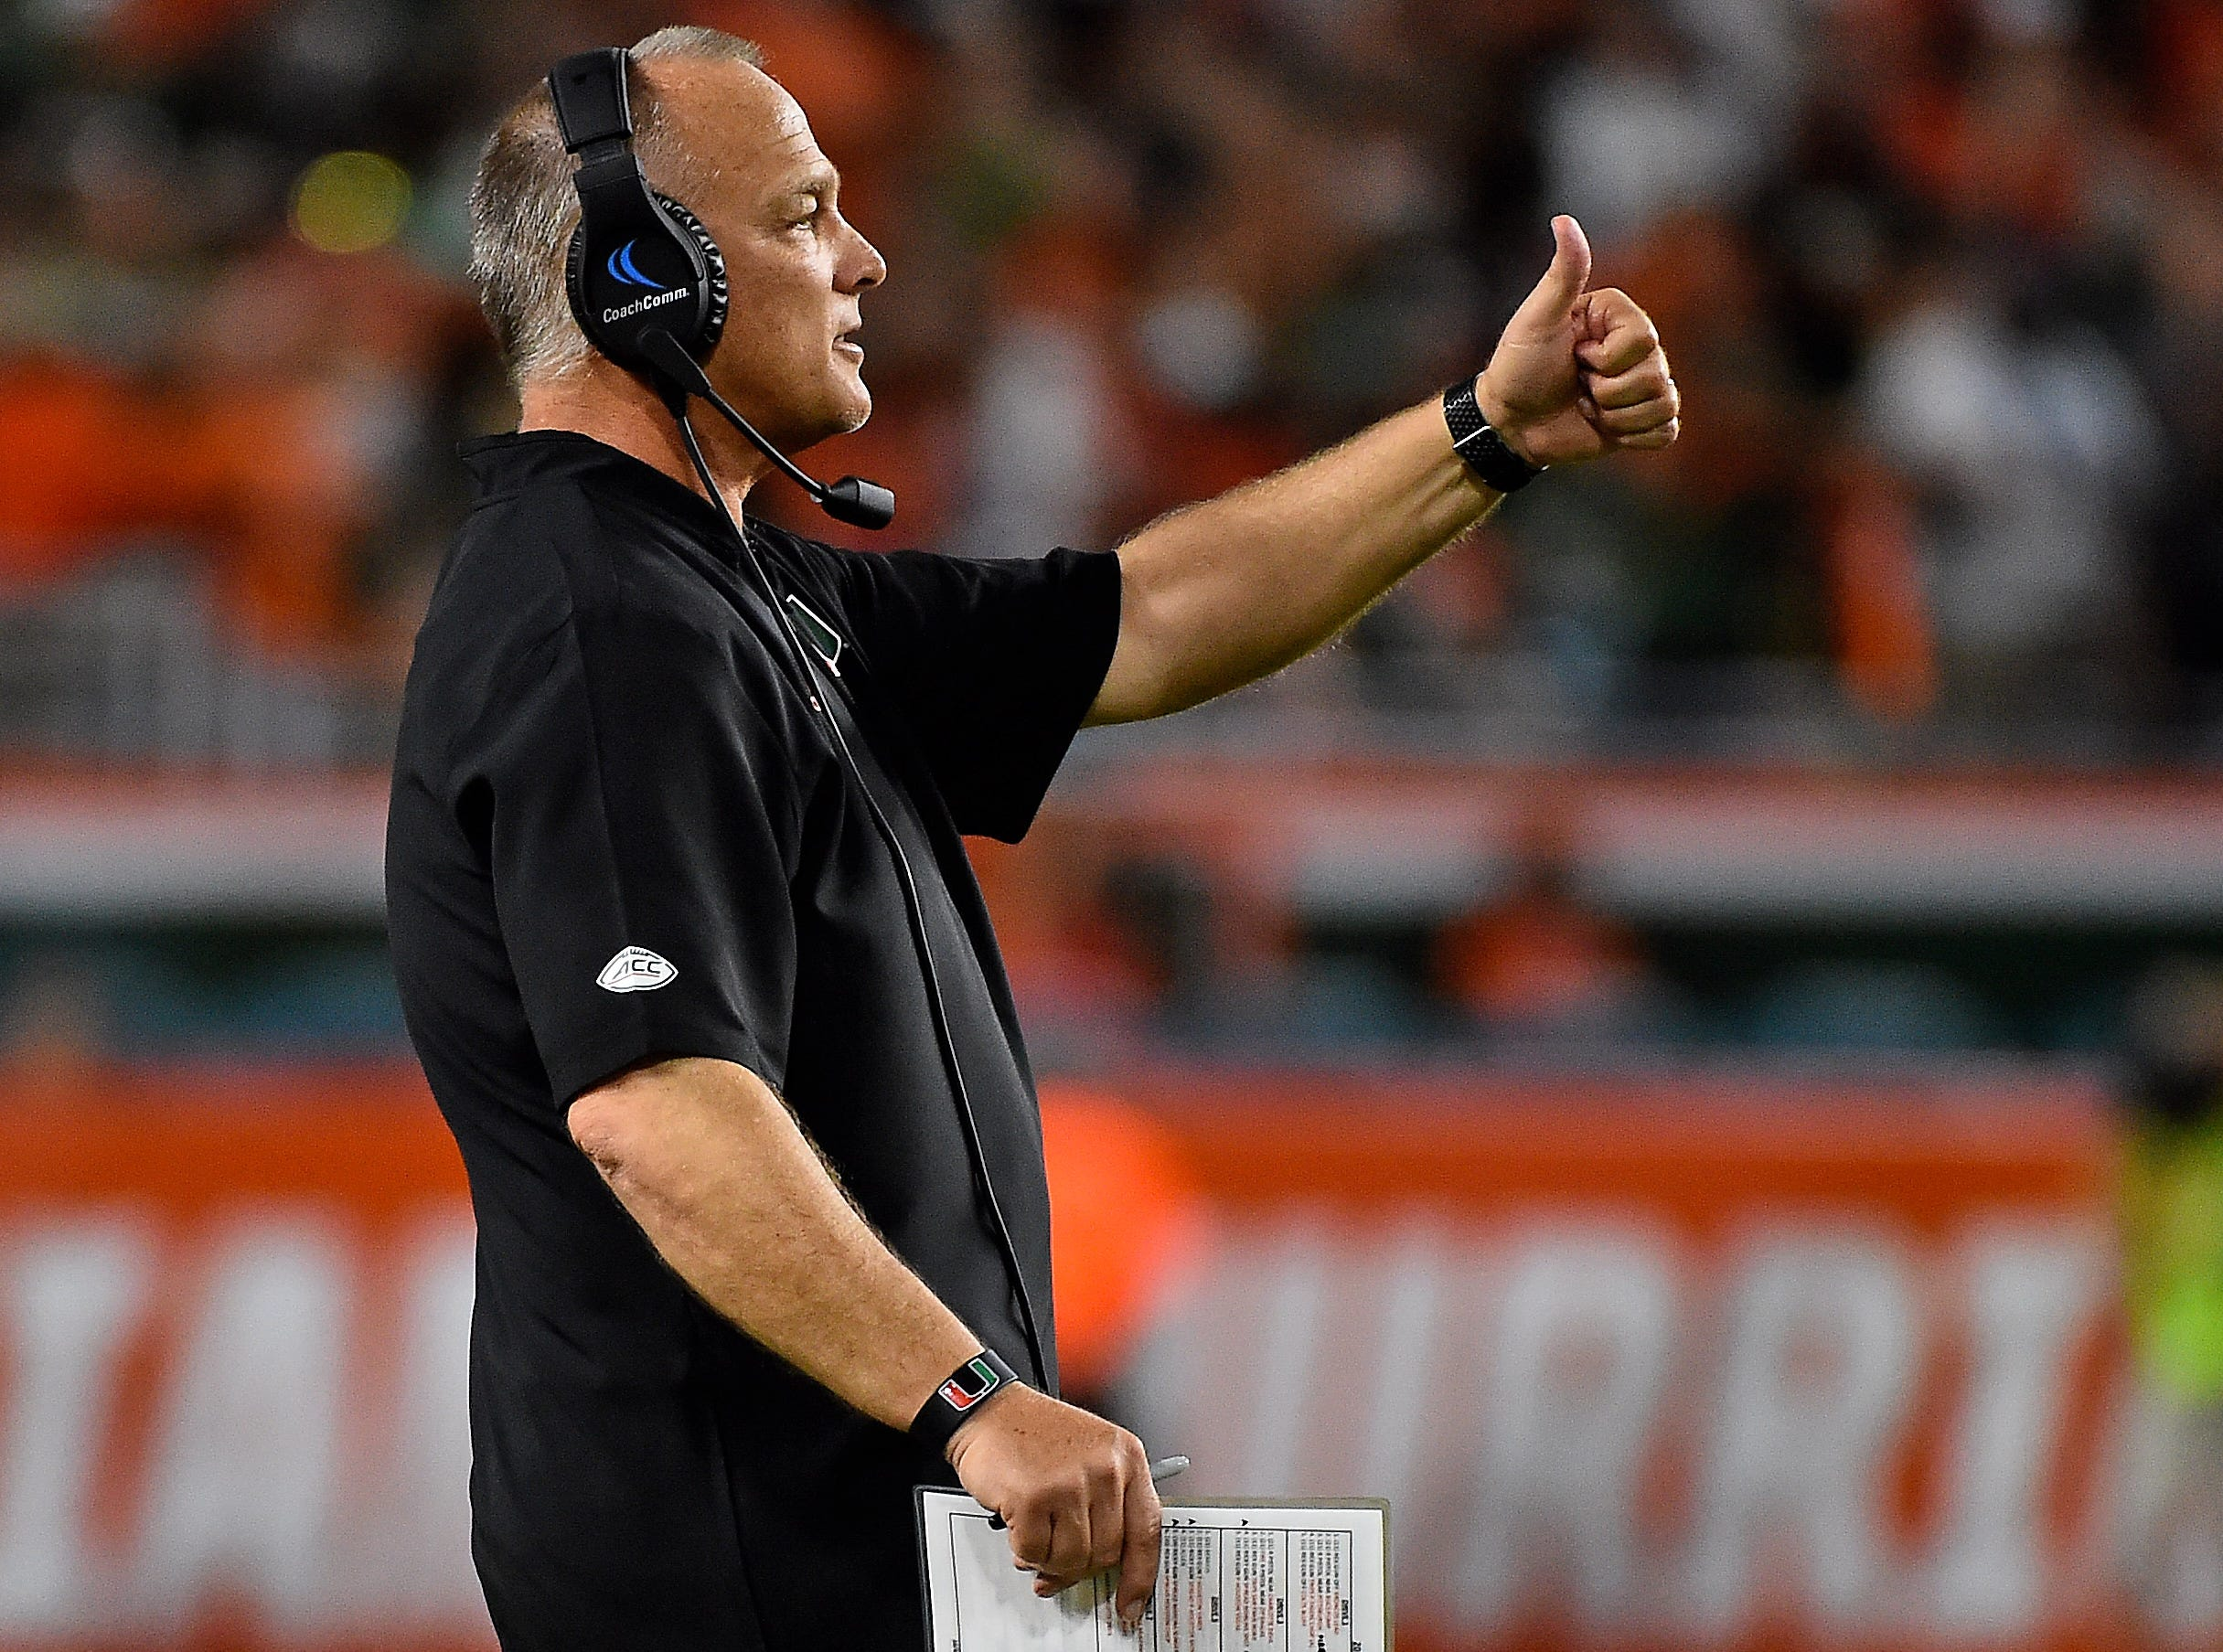 Oct 6, 2018; Miami Gardens, FL, USA; Miami Hurricanes head coach Mark Richt reacts during the second half against the Florida State Seminoles at Hard Rock Stadium. Mandatory Credit: Jasen Vinlove-USA TODAY Sports